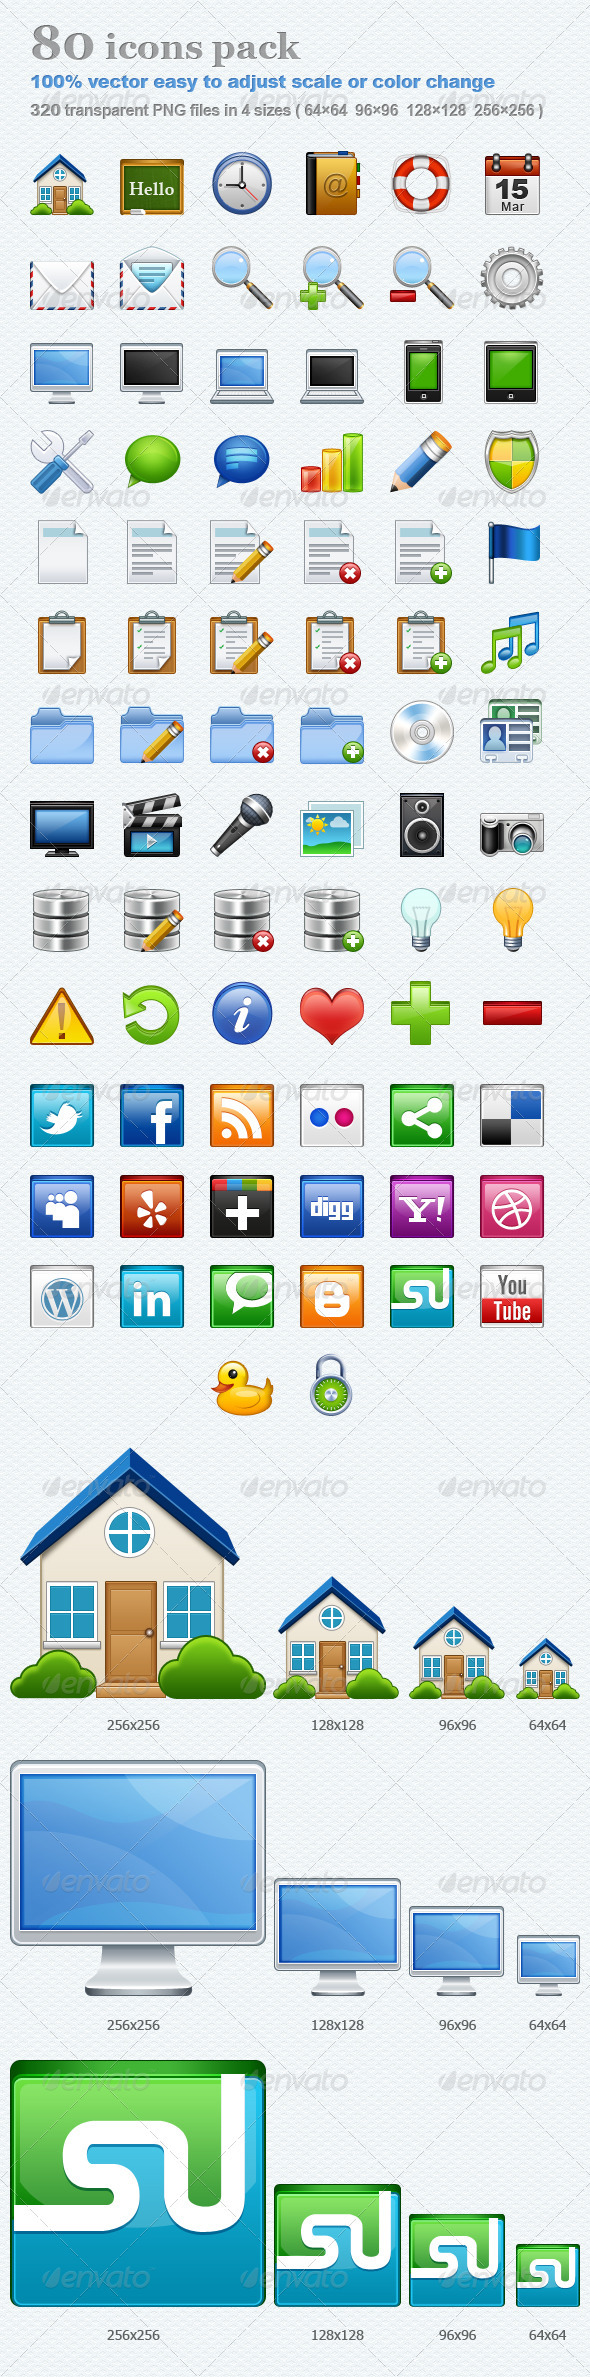 80 icons pack - Web Icons